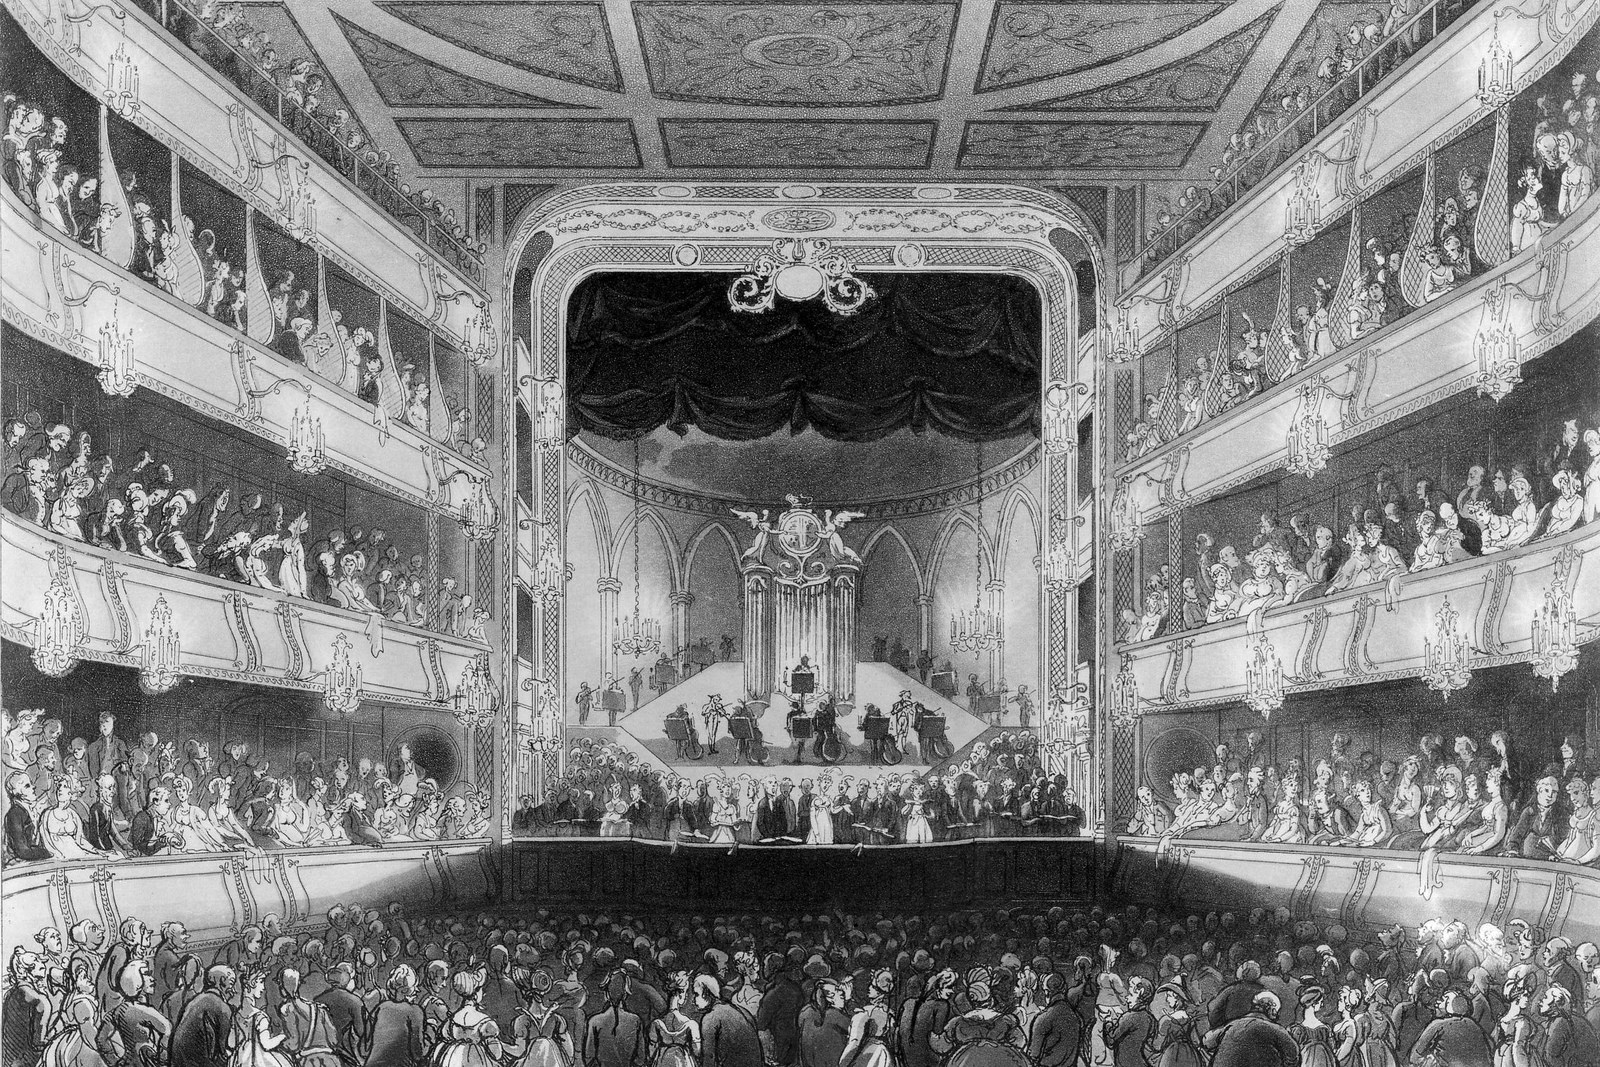 A History of the Royal Opera House